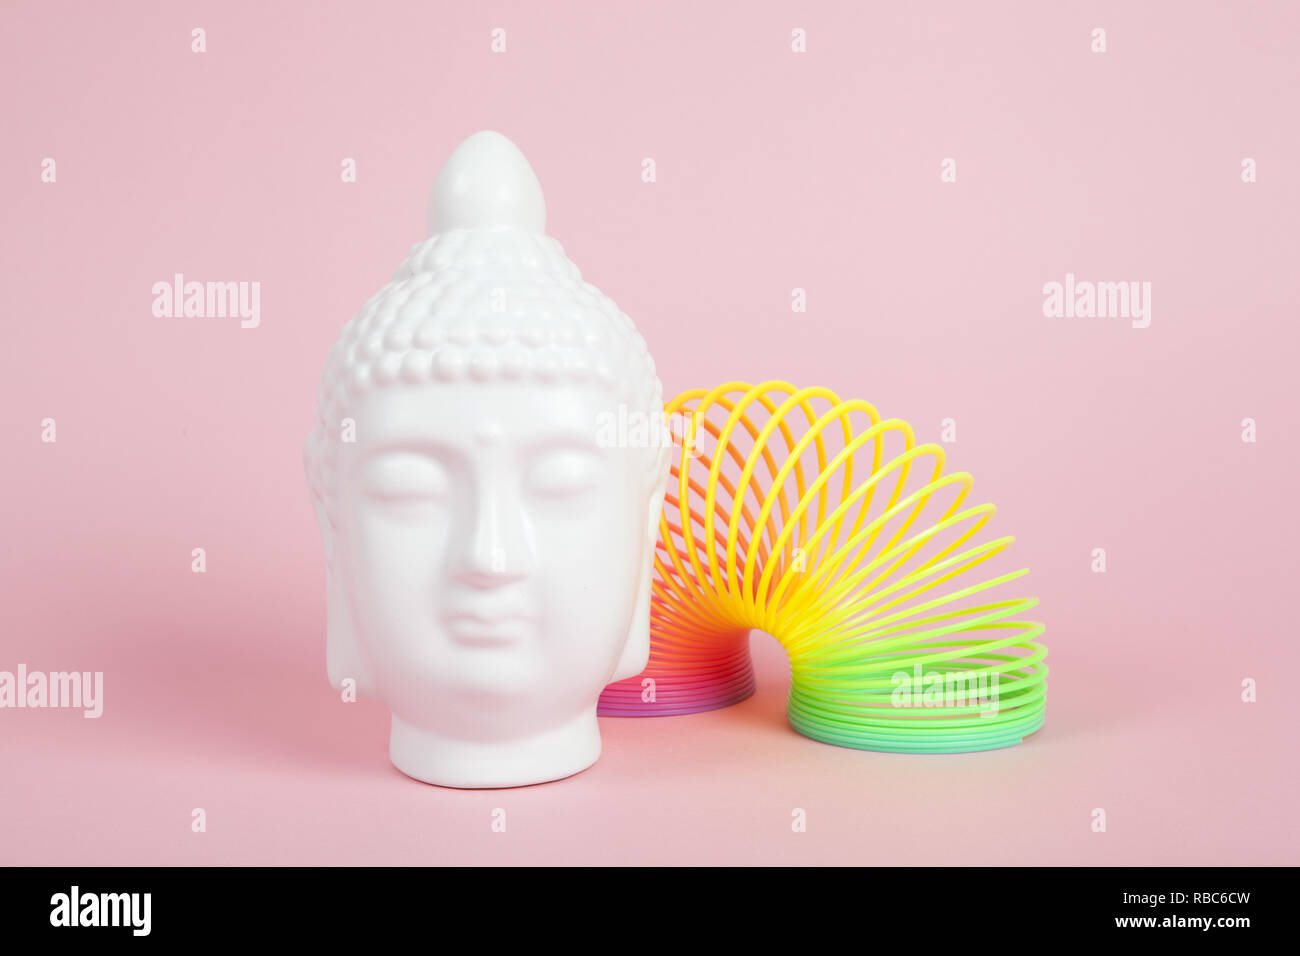 a white porcelain bouddha head placed near rainbow spring on a pink and vibrant background. Minimum color still life - Stock Image